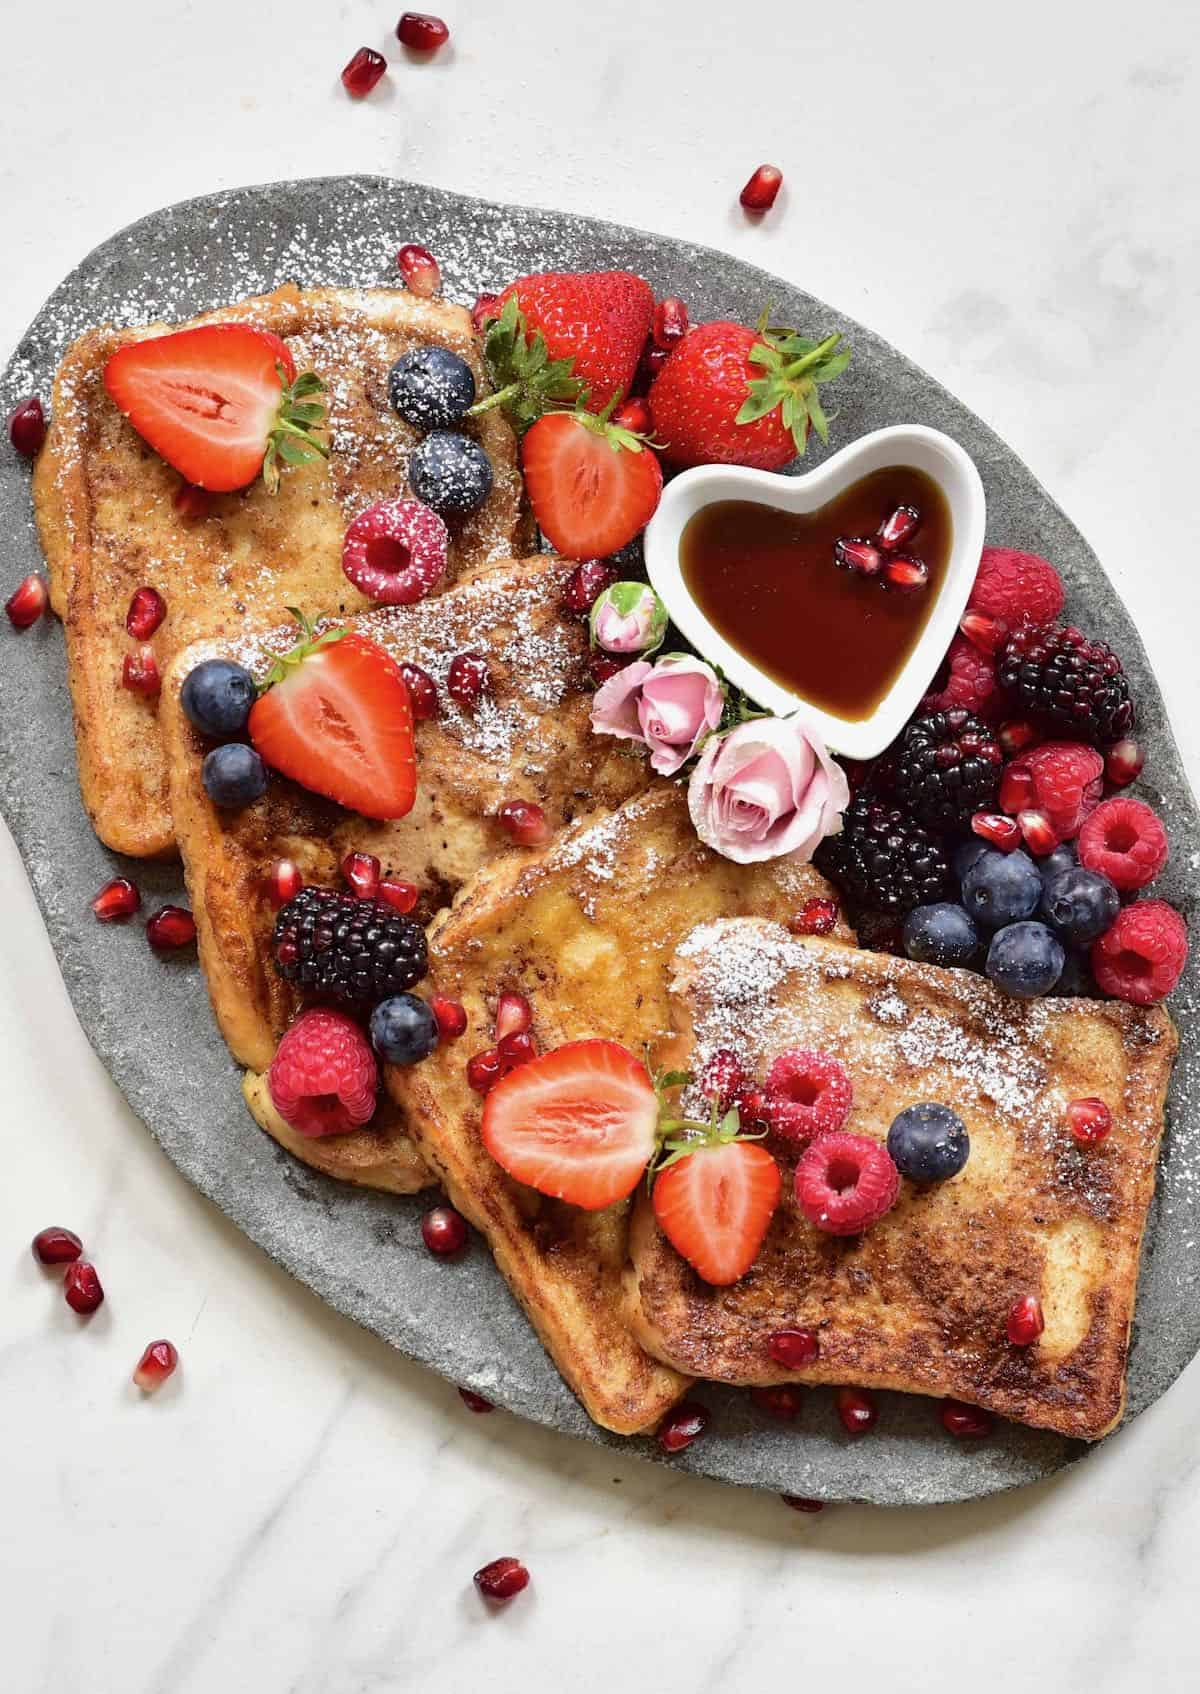 French toast with pullman slices